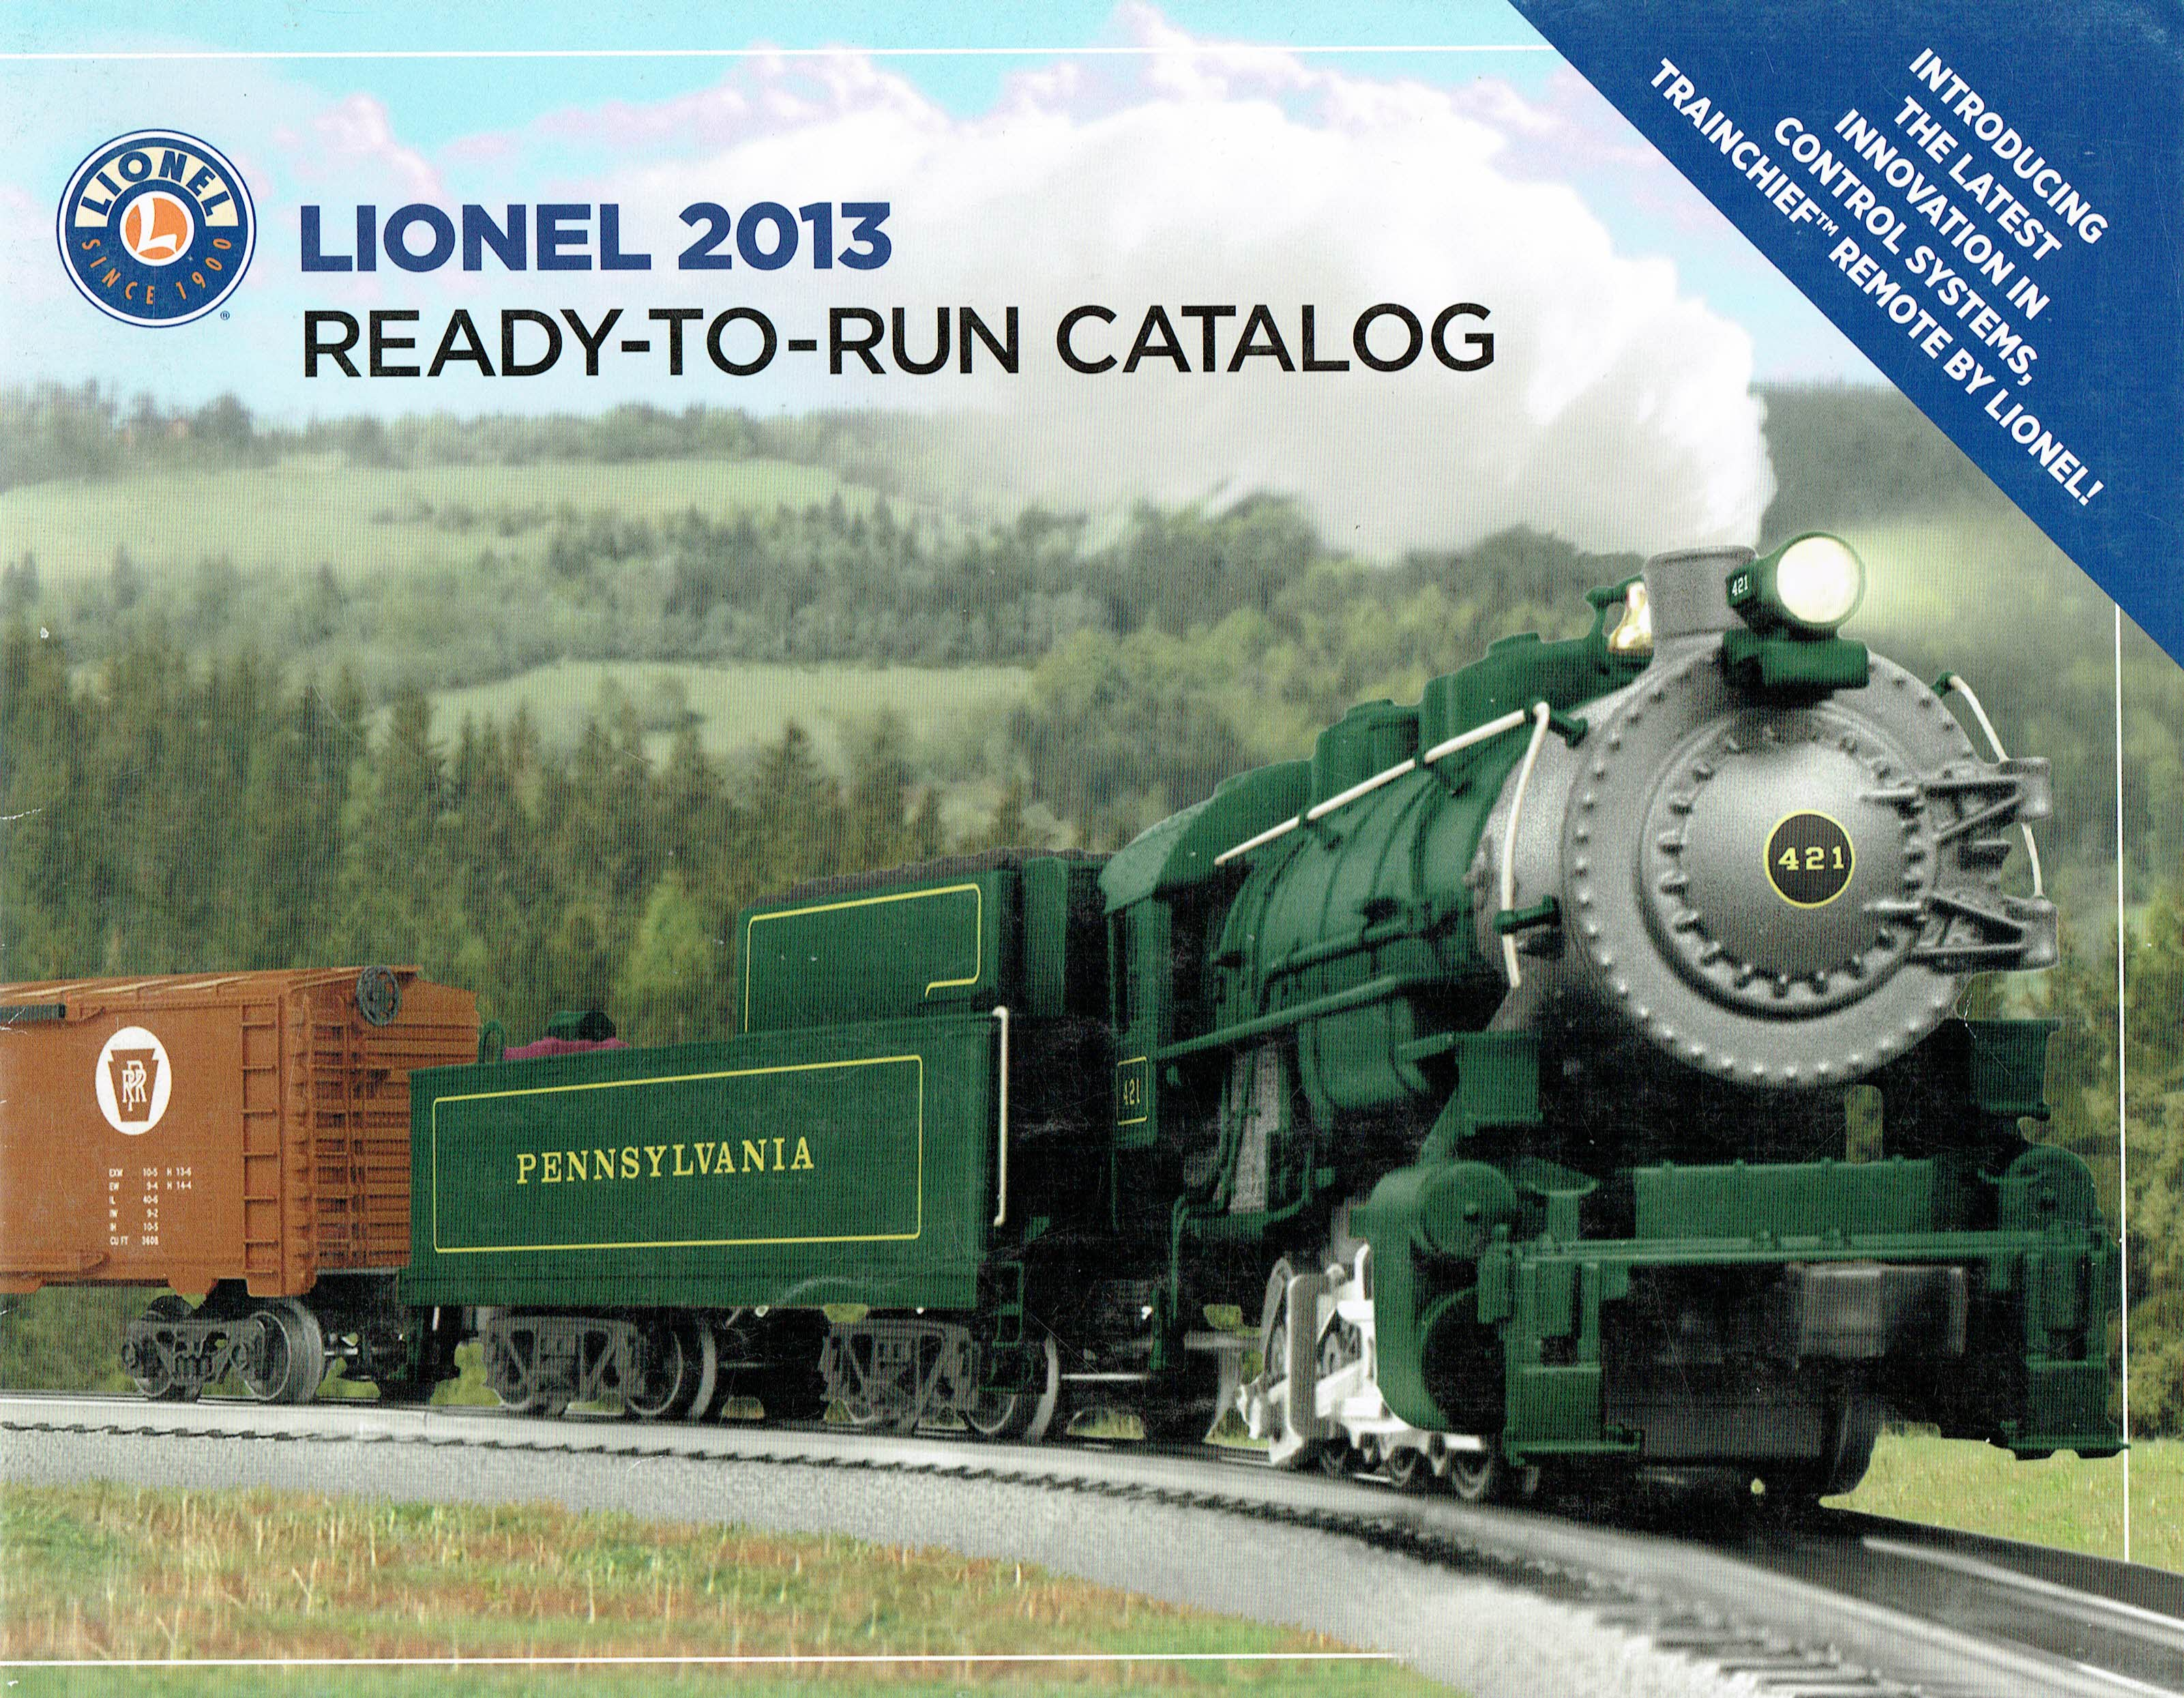 Lionel 2013 Ready-to-Run Catalog image